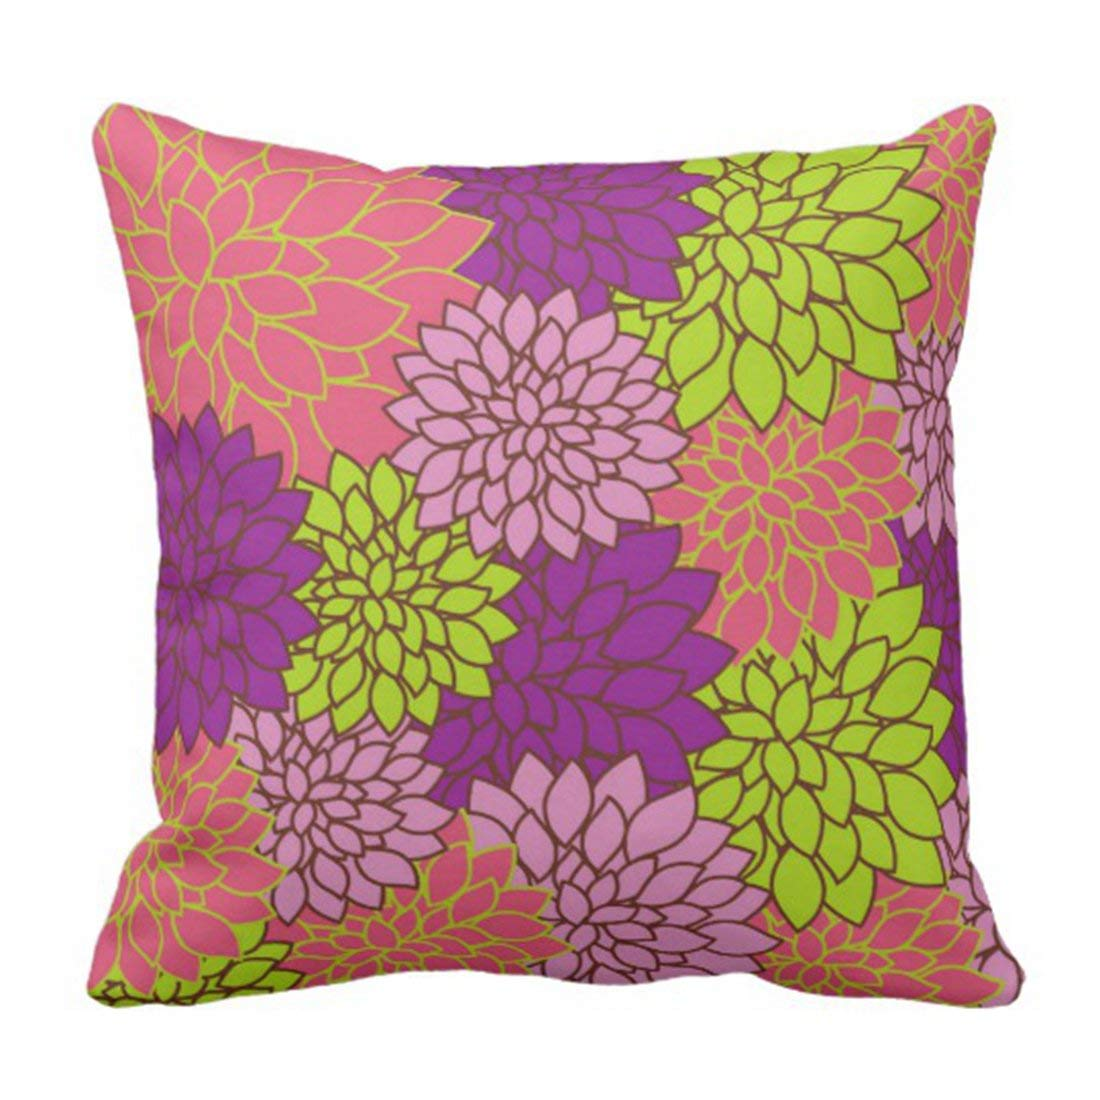 BPBOP Flowers Bold Floral in Lime Green Pink Purple Outside Pillowcase Cover 20x20 inch